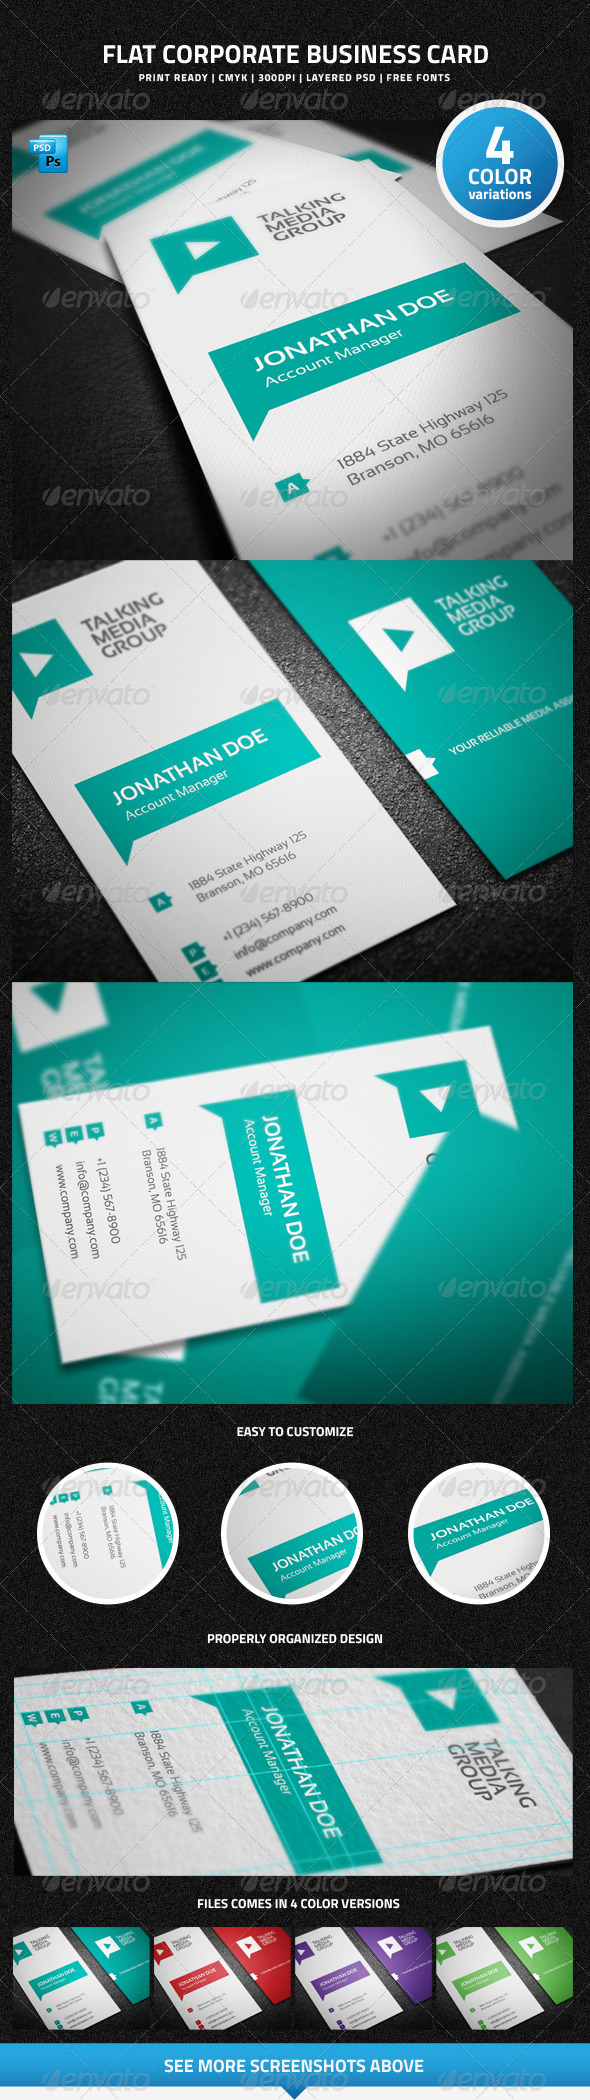 Flat Corporate Business Card - 15 - Corporate Business Cards